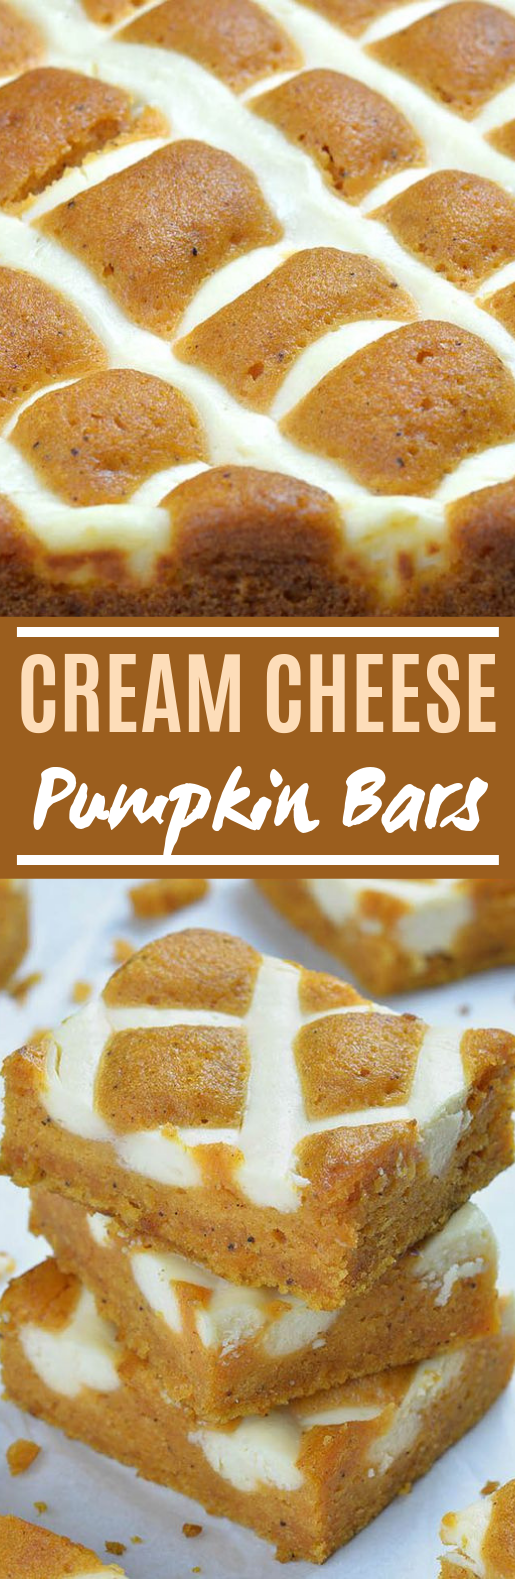 Pumpkin Bars with Cream Cheese #desserts #bars